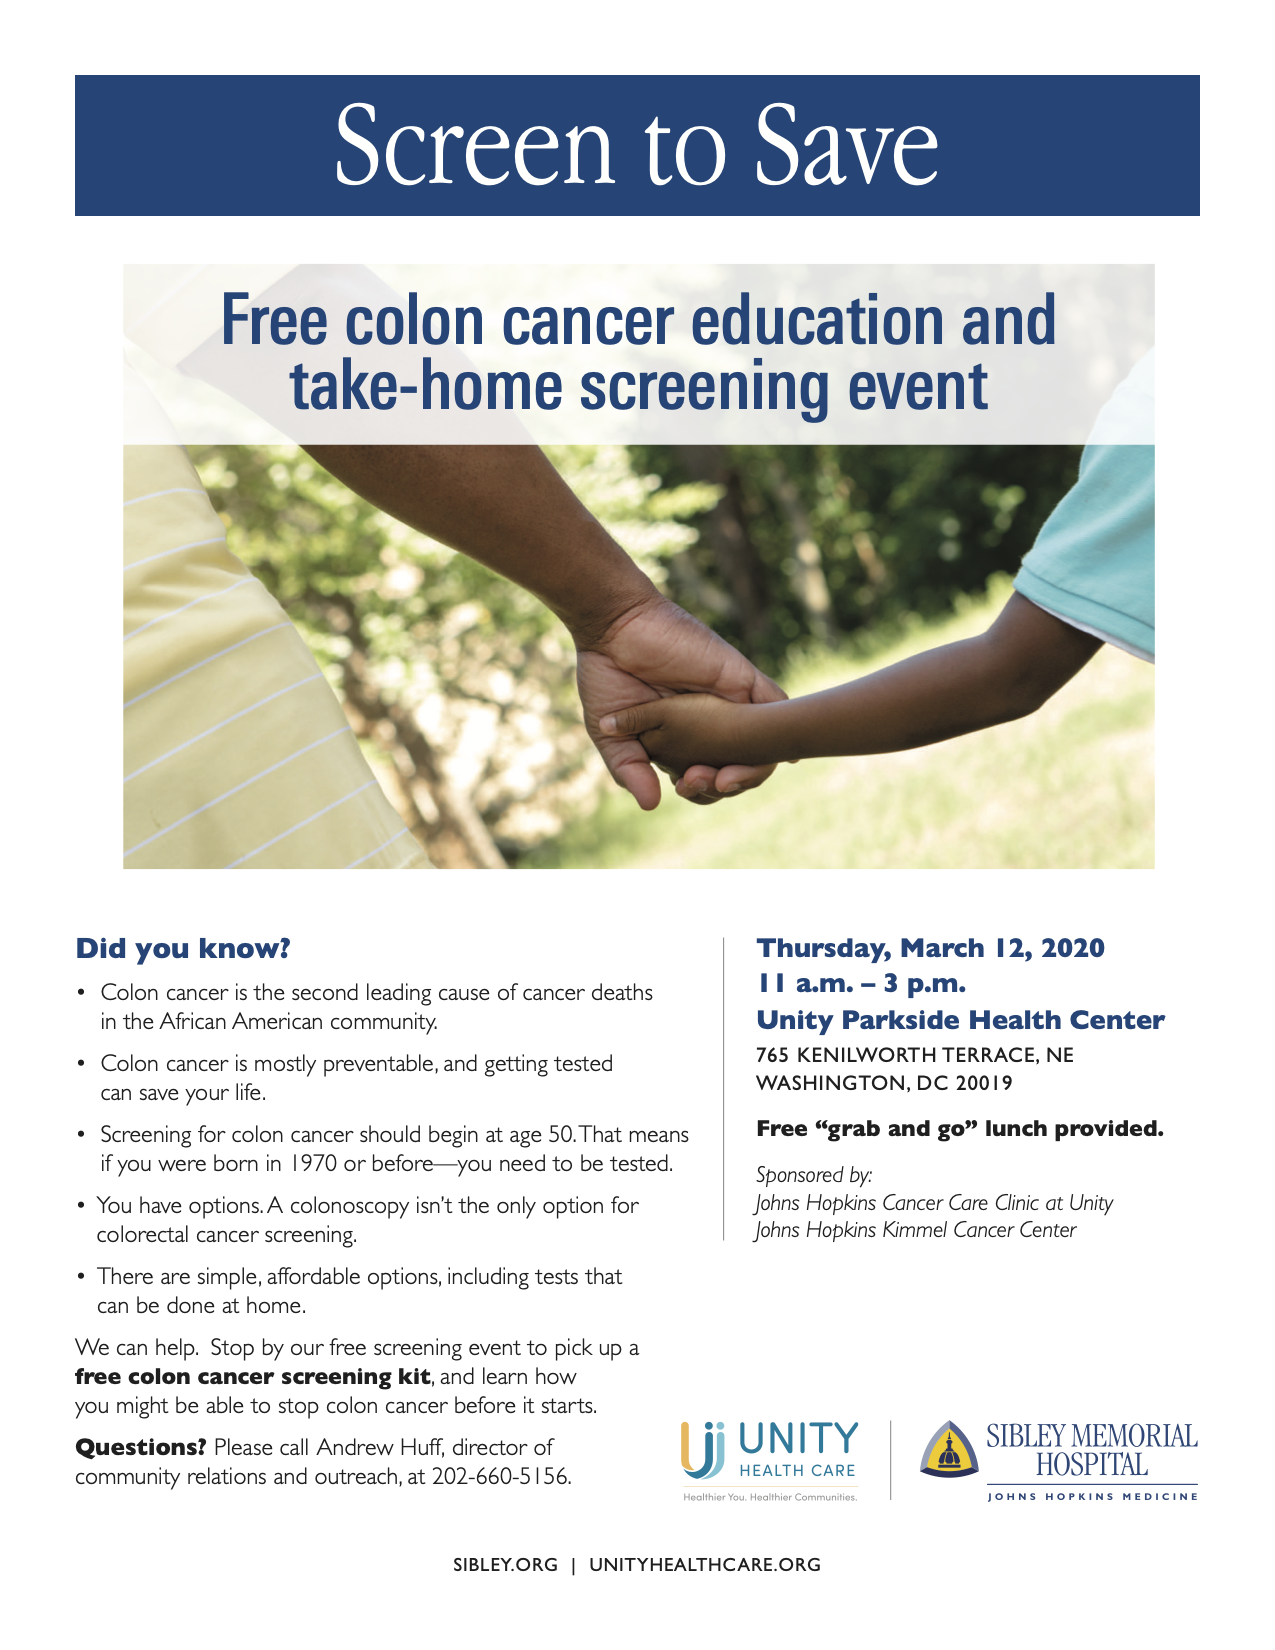 Get A Free Colon Cancer Screening Kit On March 12th At Unity Parkside Health Center Sp Congress Heights On The Rise